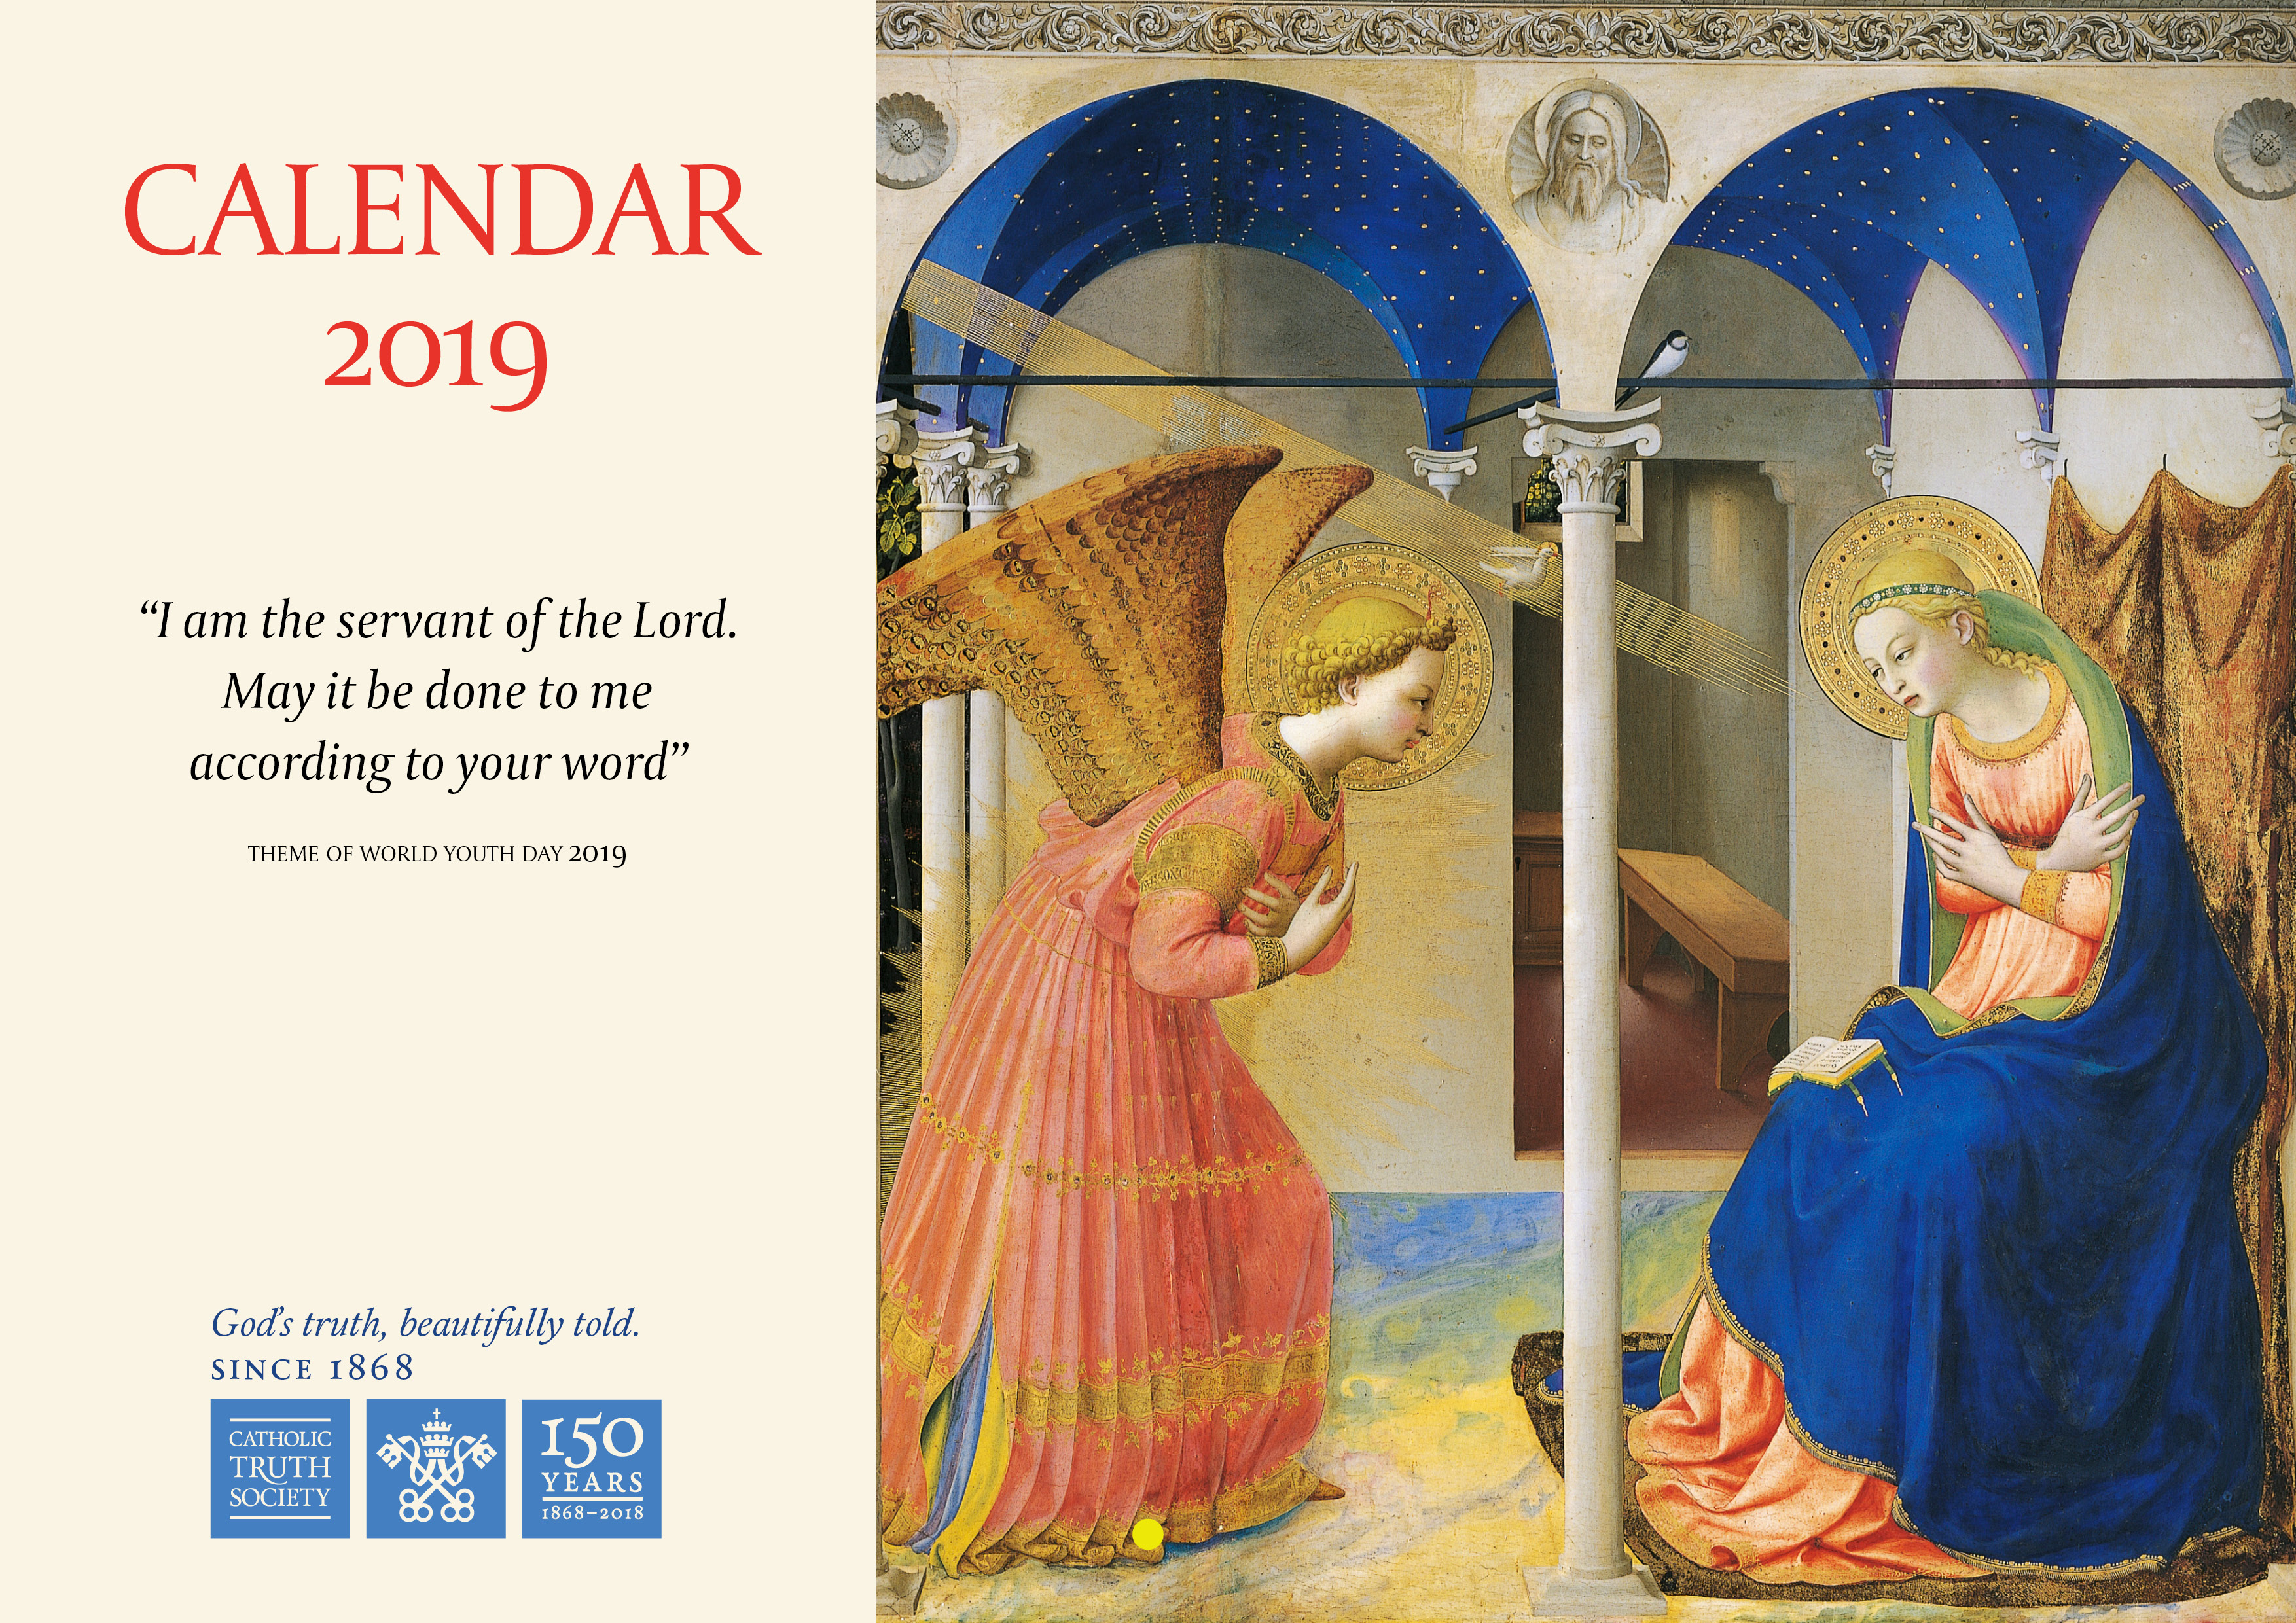 Liturgical Year Calendar 2019 With CTS